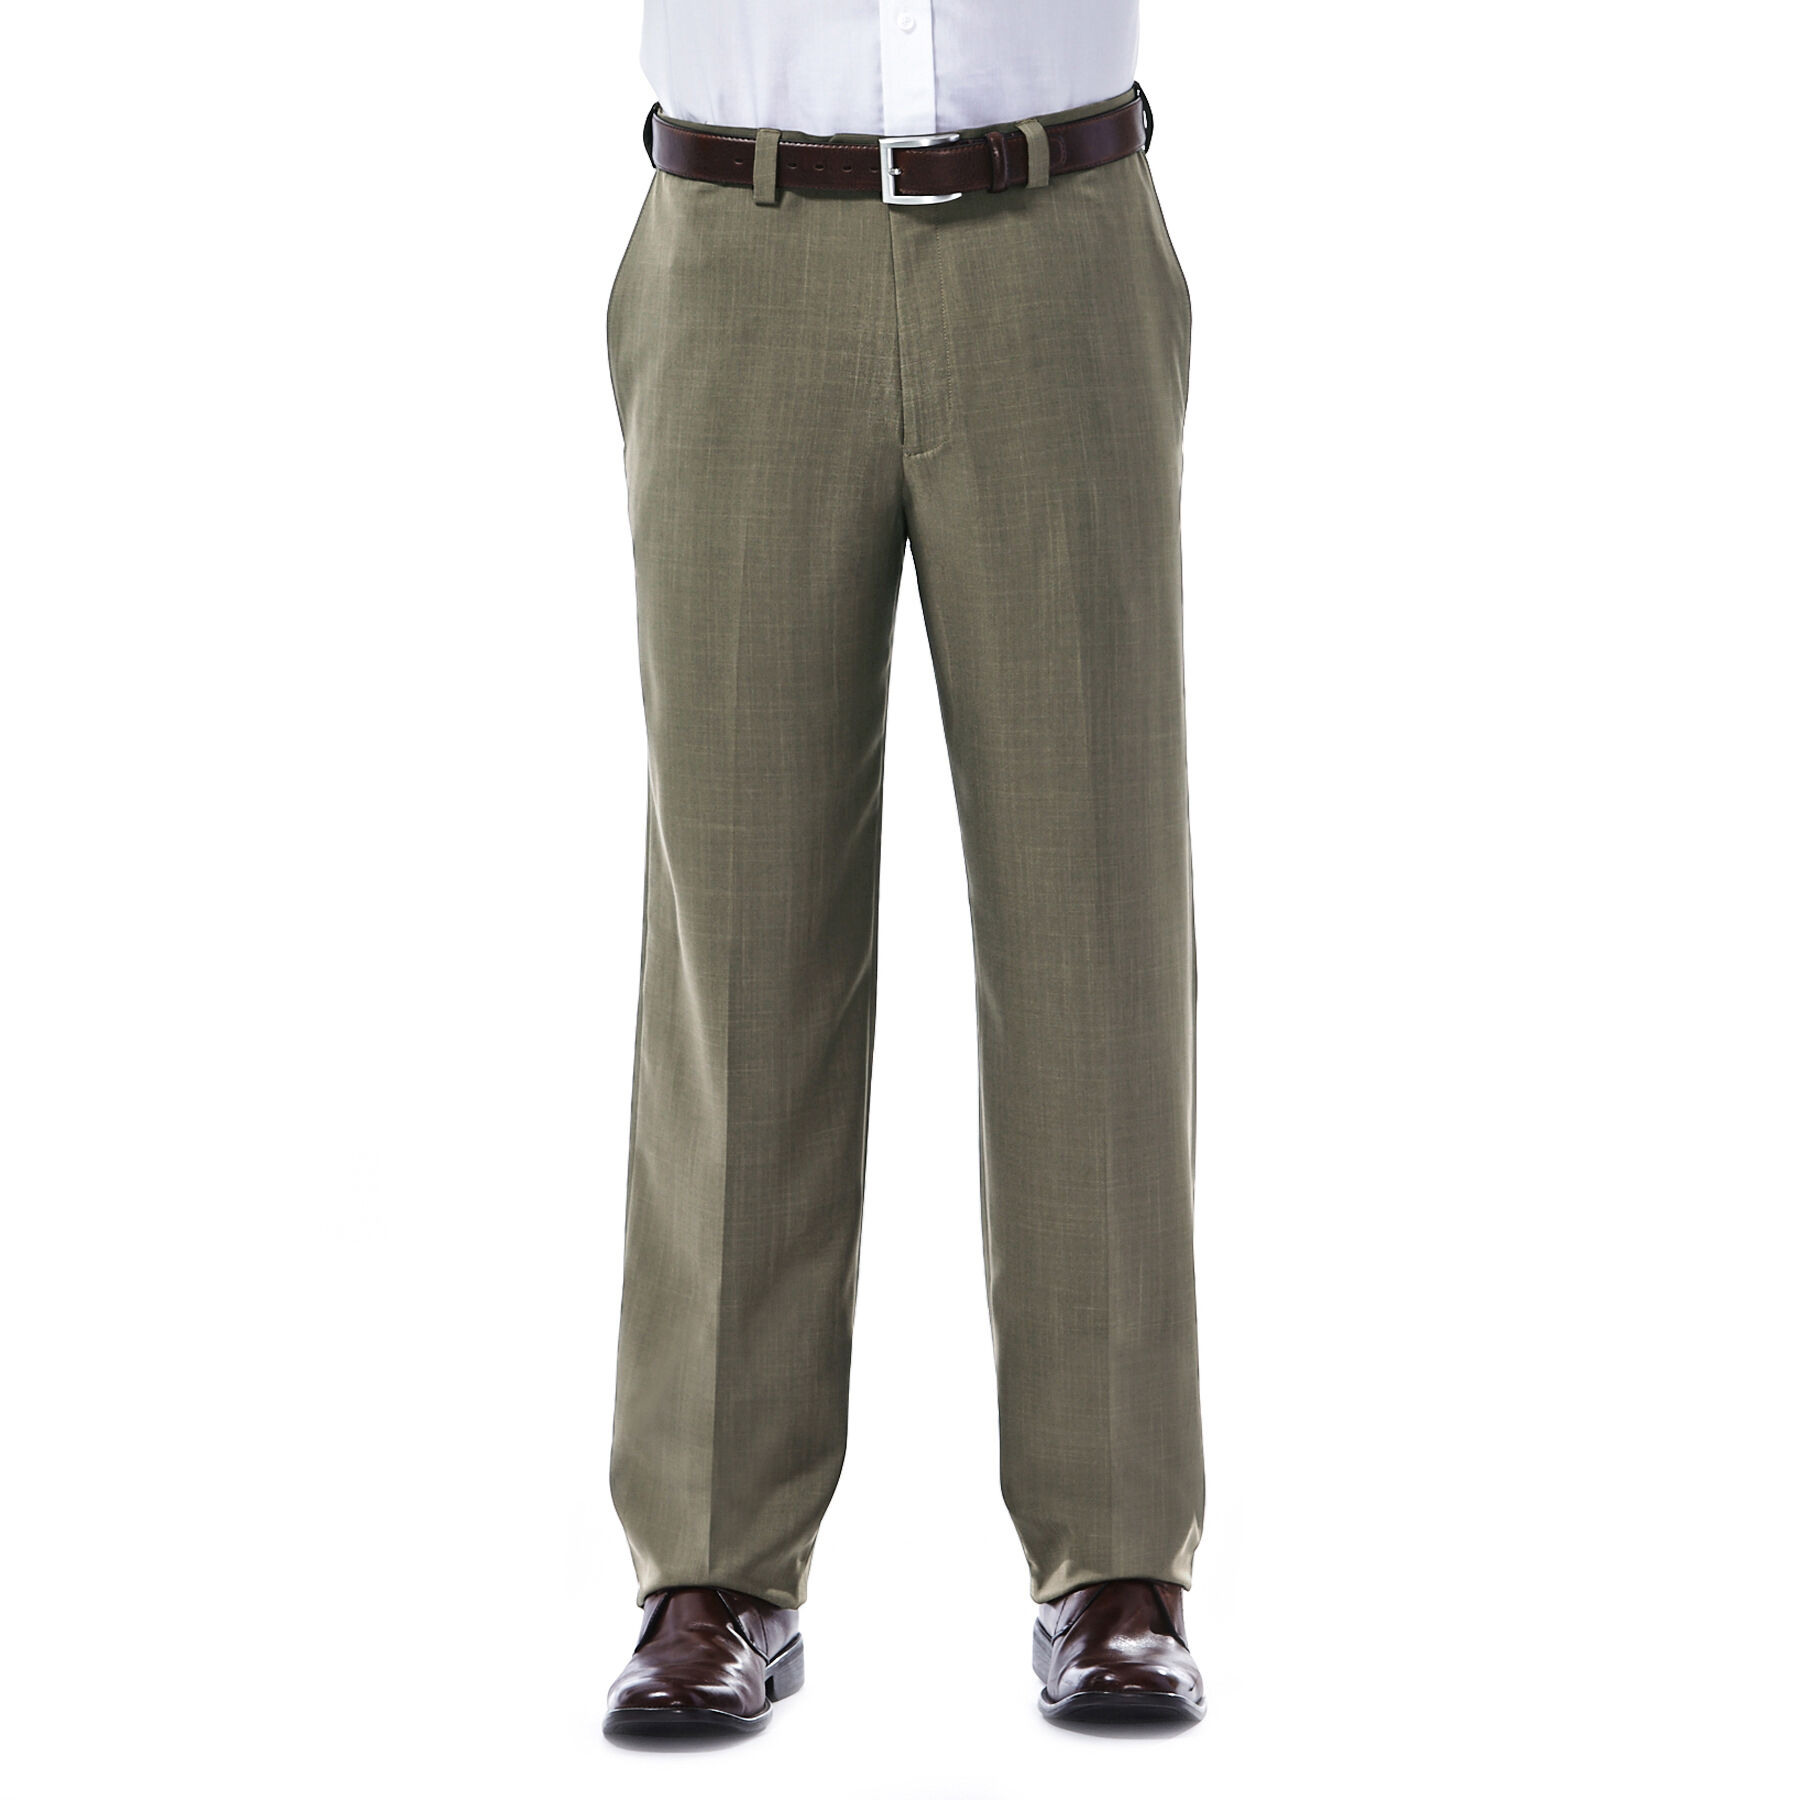 Haggar HD00218 Mens E-CLO Repreve Stria Flat Front Classic Fit Dress Pants